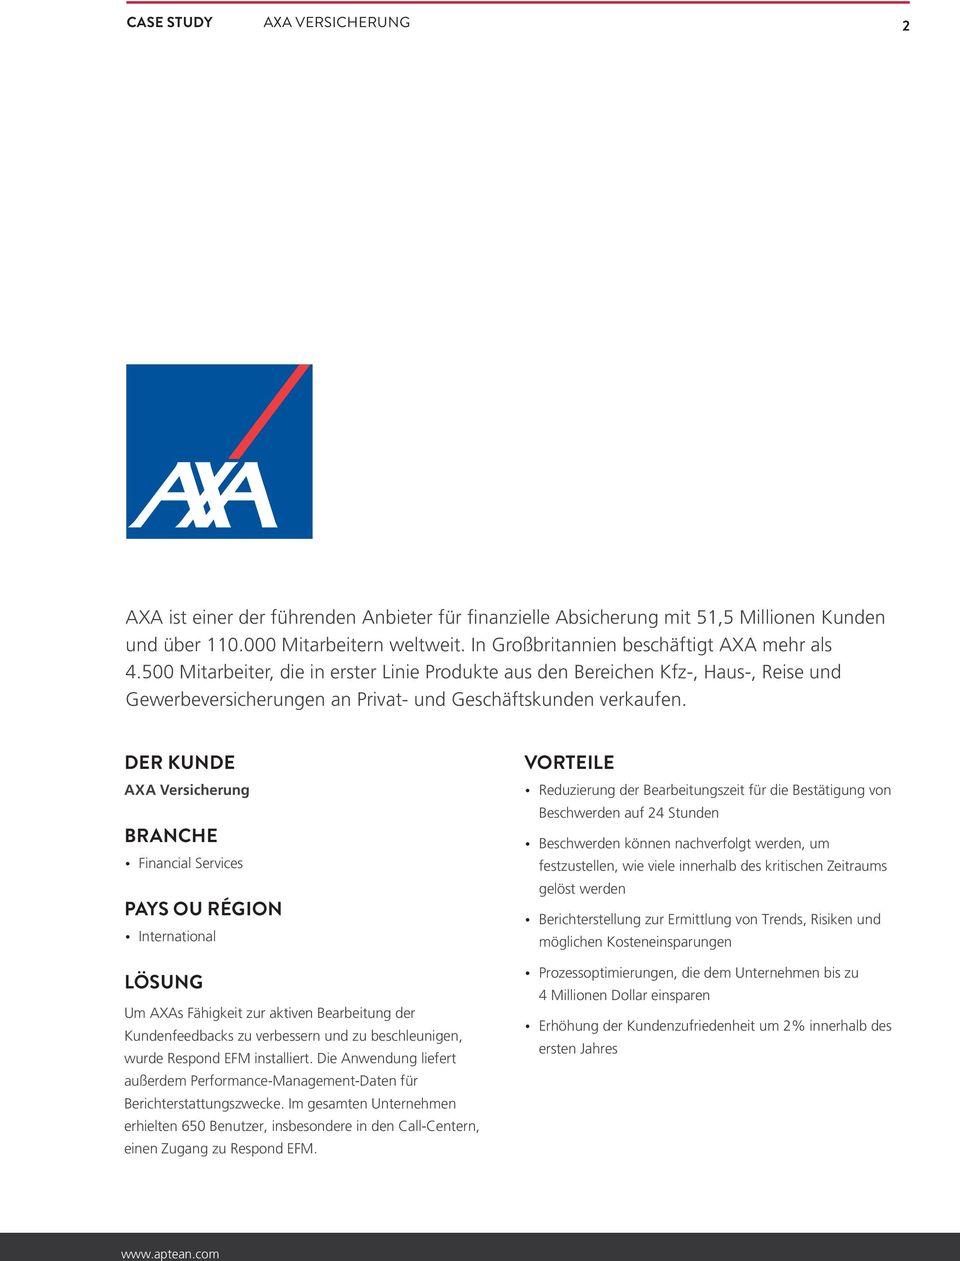 DER KUNDE AXA Versicherung BRANCHE Financial Services PAYS OU RÉGION International LÖSUNG Um AXAs Fähigkeit zur aktiven Bearbeitung der Kundenfeedbacks zu verbessern und zu beschleunigen, wurde